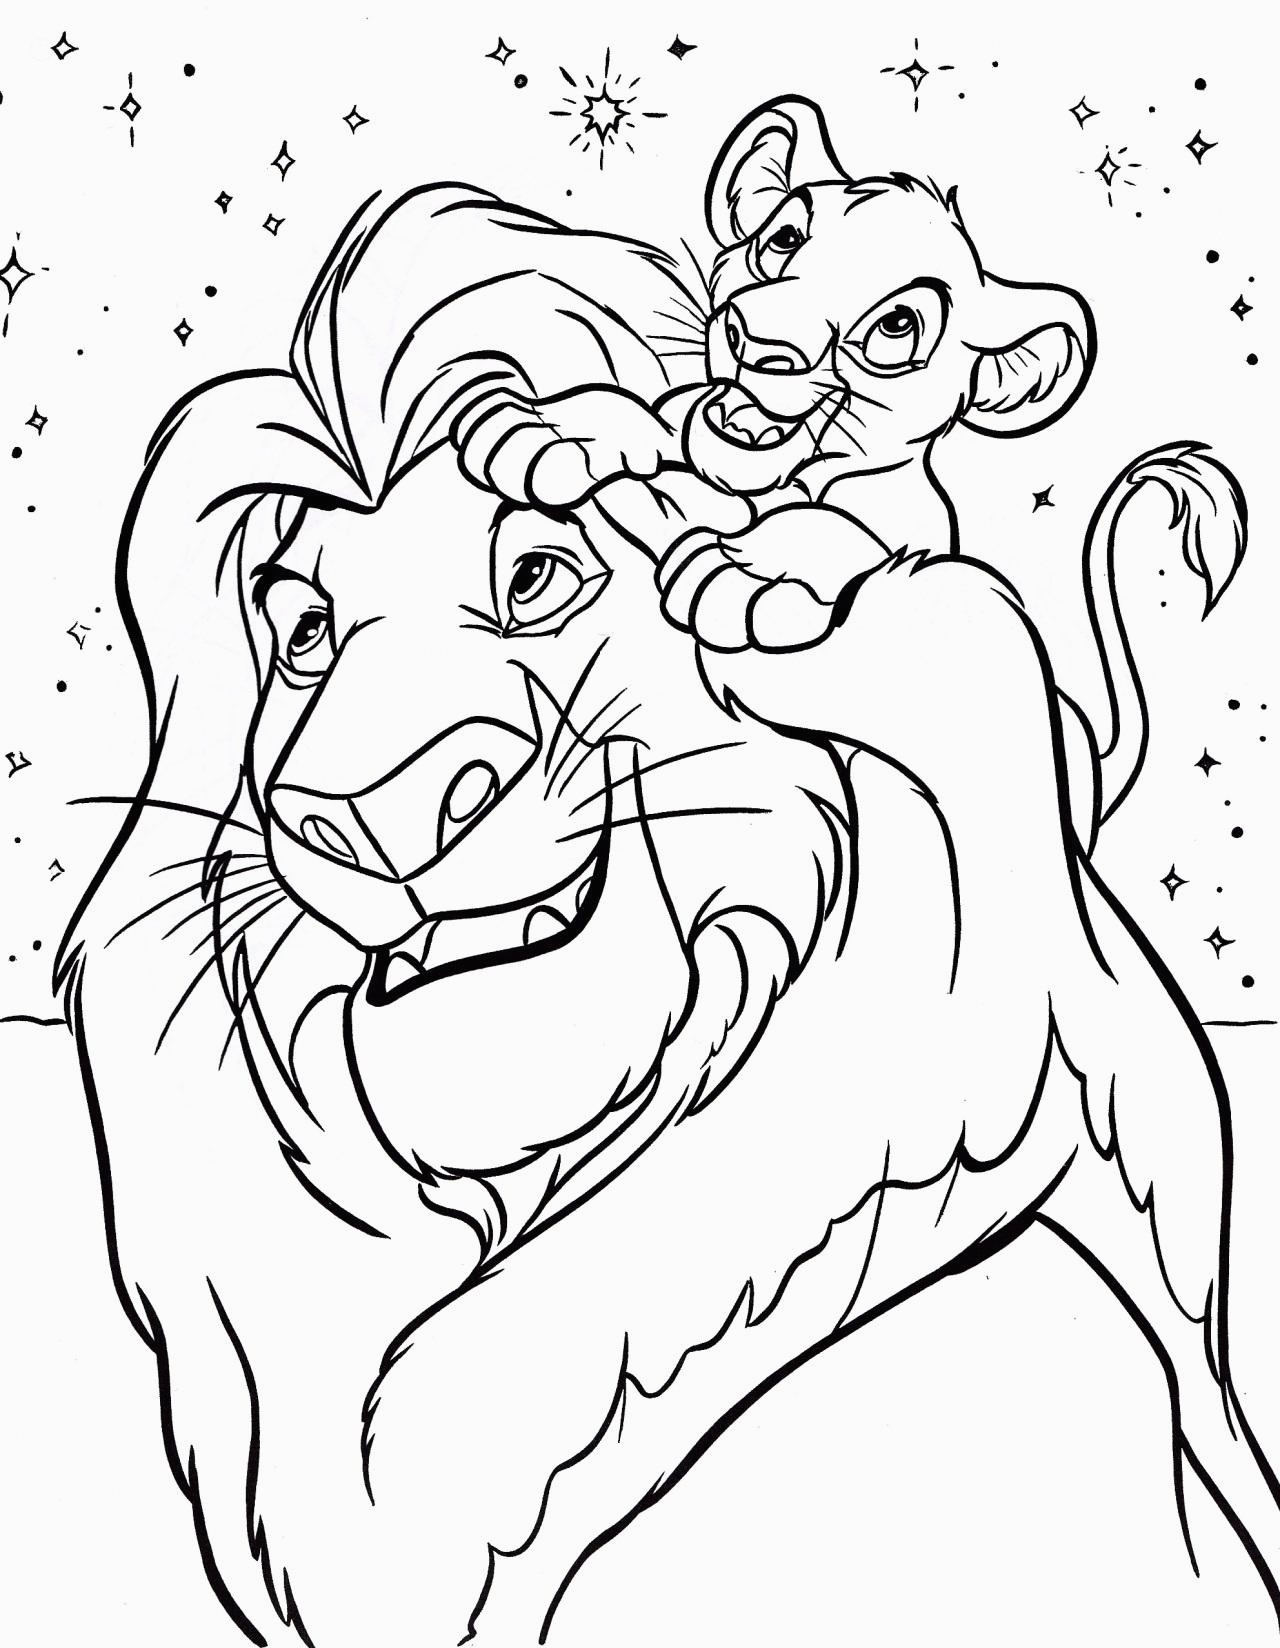 Free Printable Lion King Coloring Pages | Printable Coloring Pages - Free Printable Picture Of A Lion